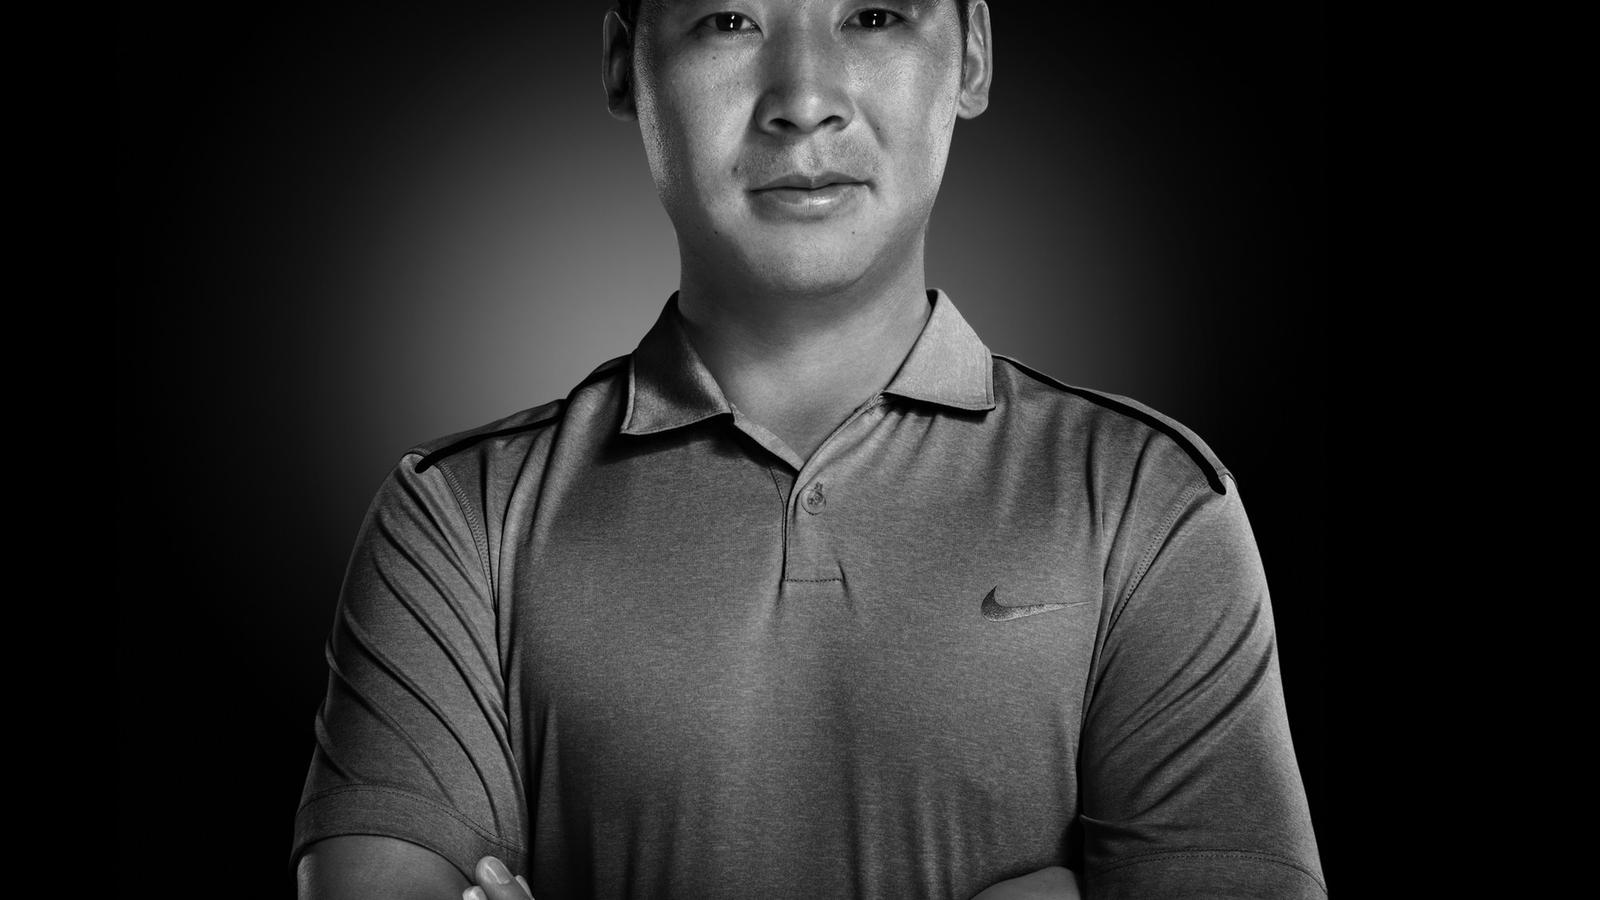 Nike Athlete Xin-Jun Zhang